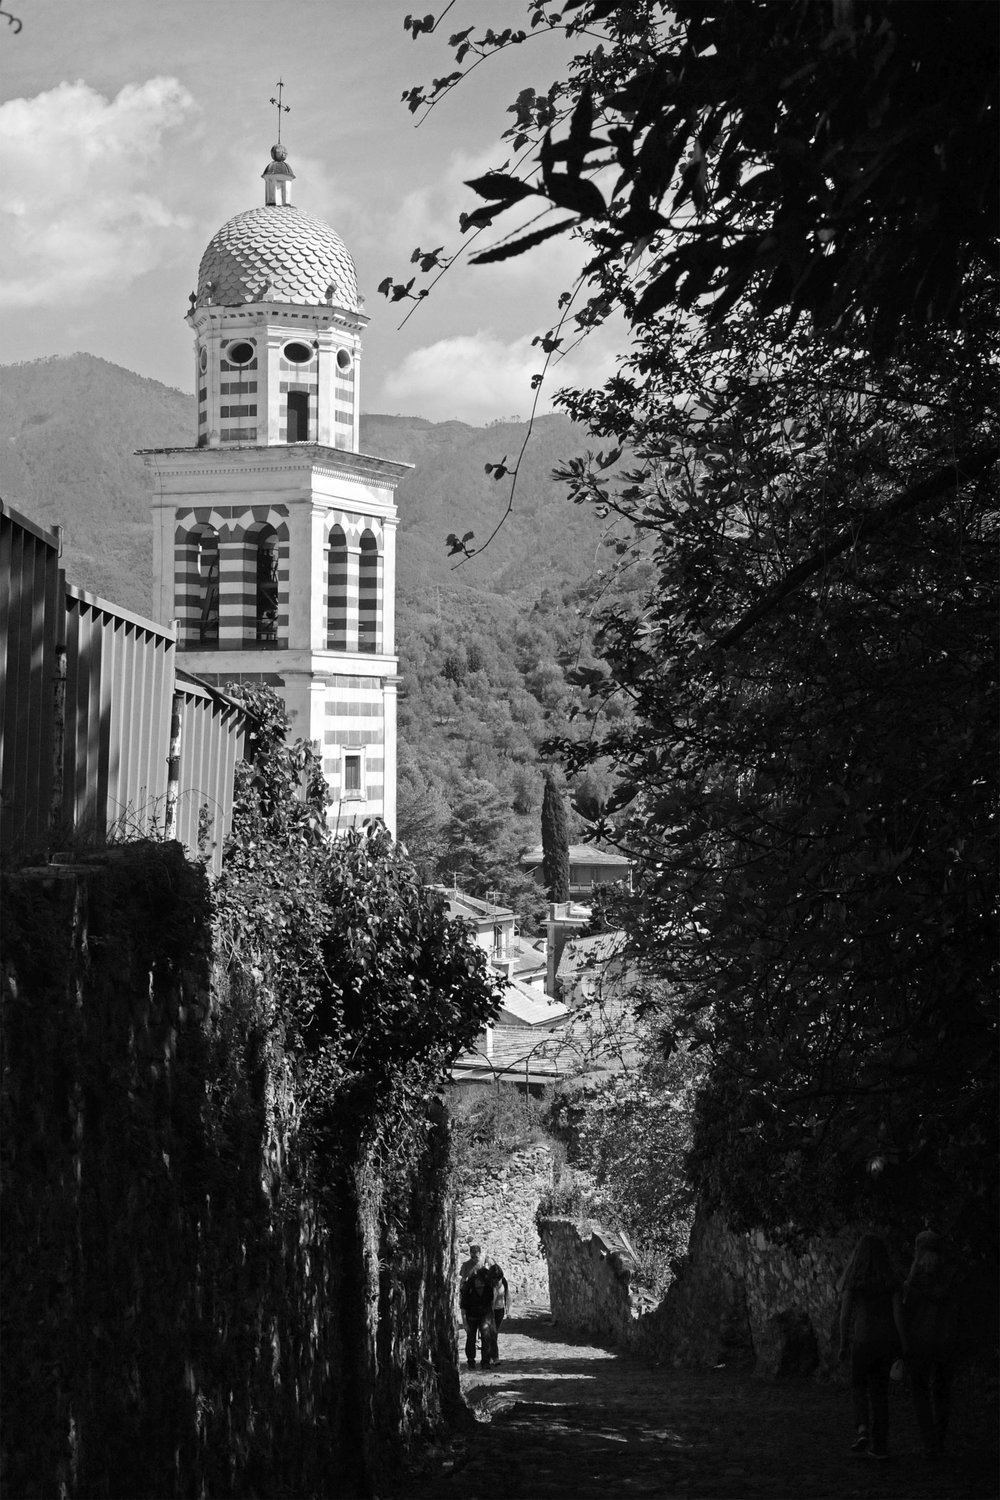 Levanto Church, Liguria